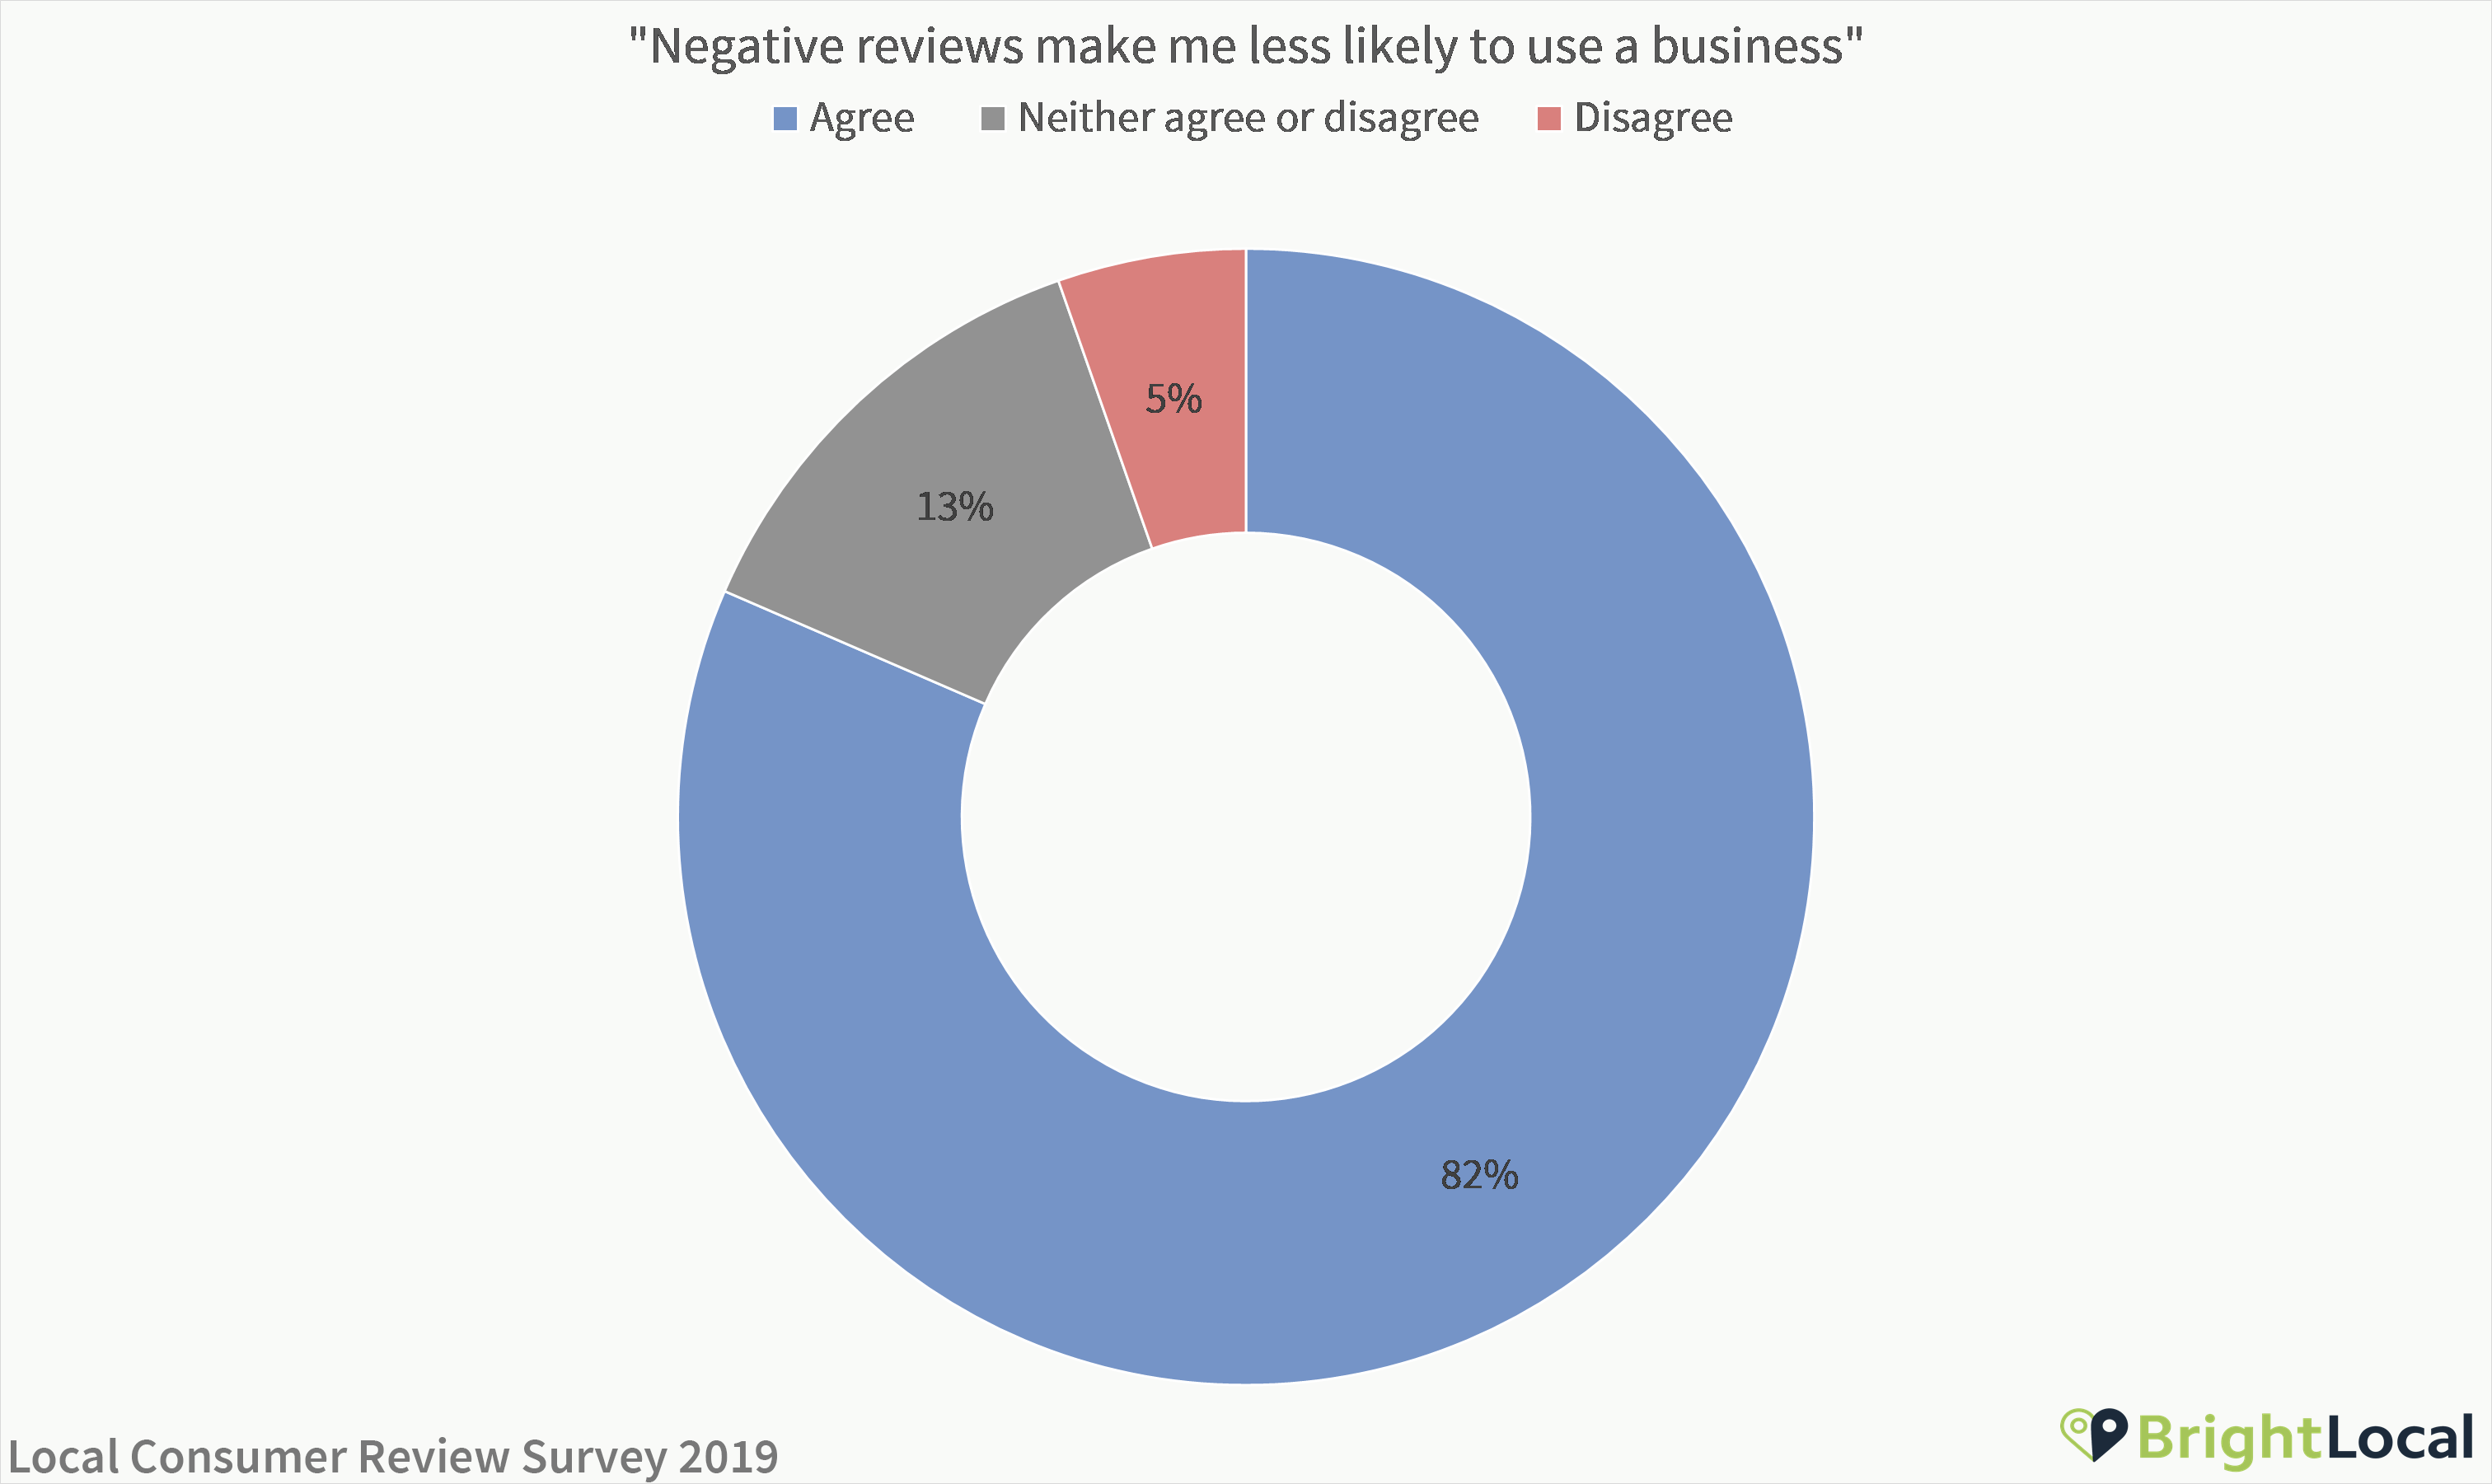 Negative reviews make me less likely to use a business